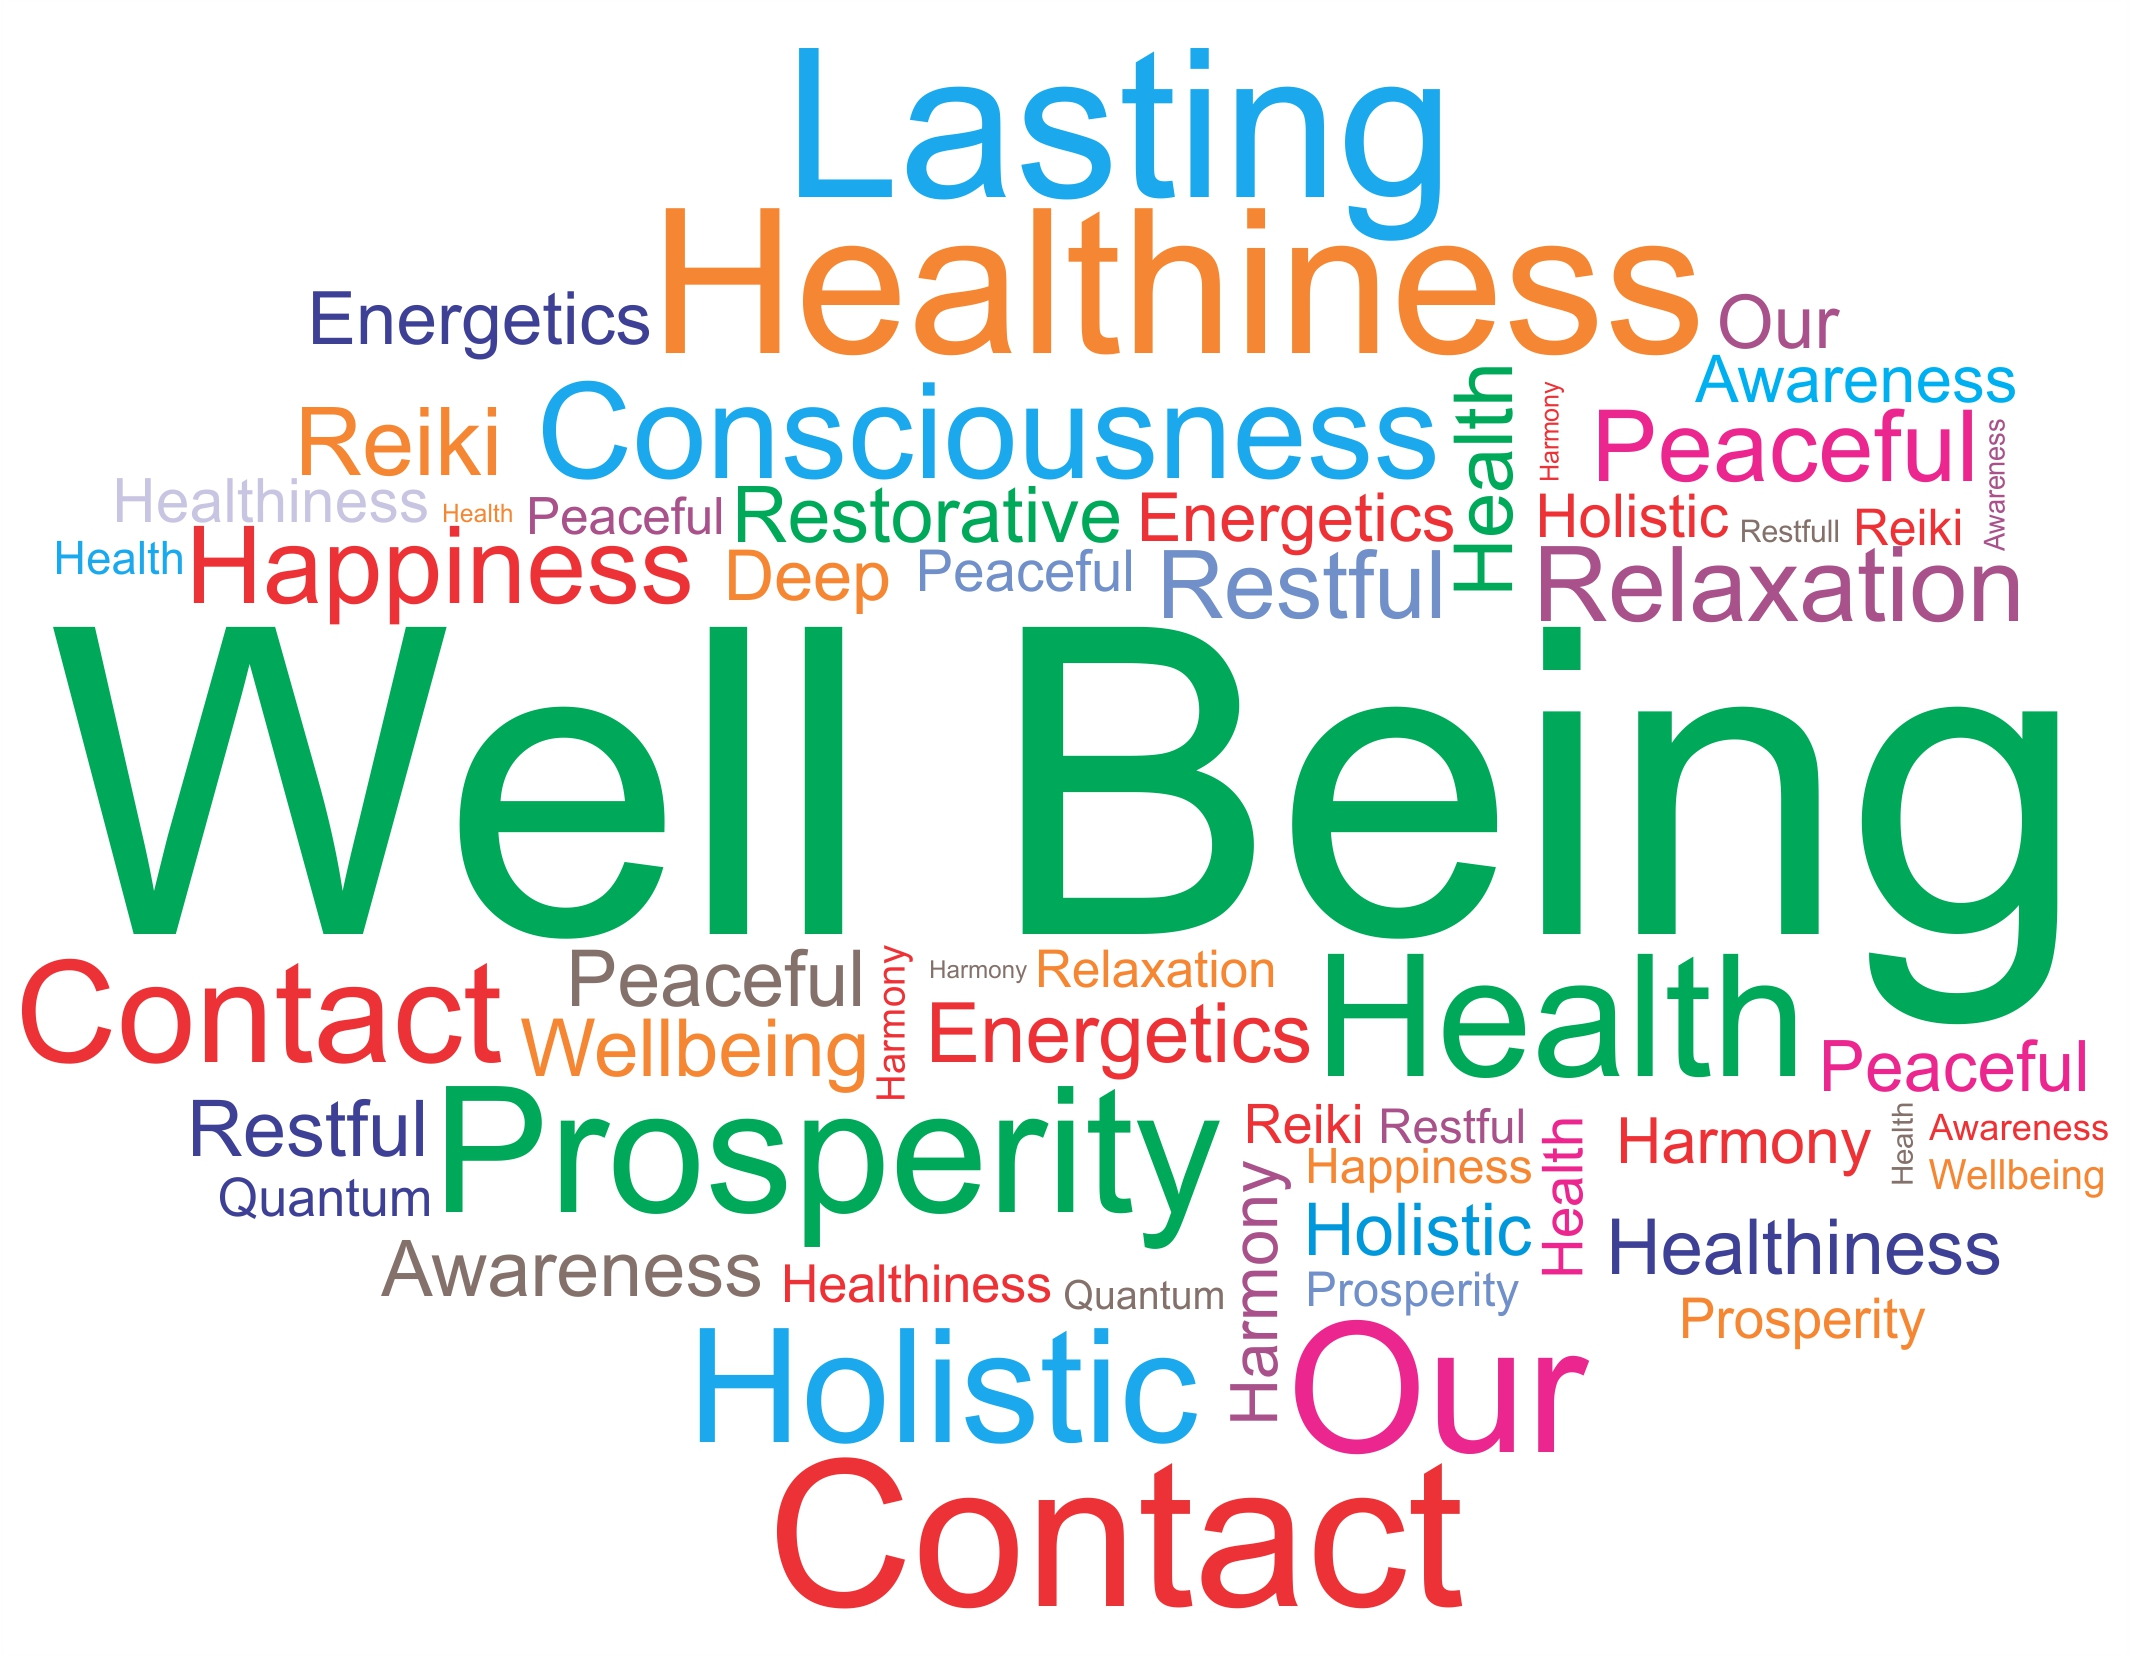 CONTACT WELL BEING BRINGS YOU BEYOND YOUR THOUGHTS